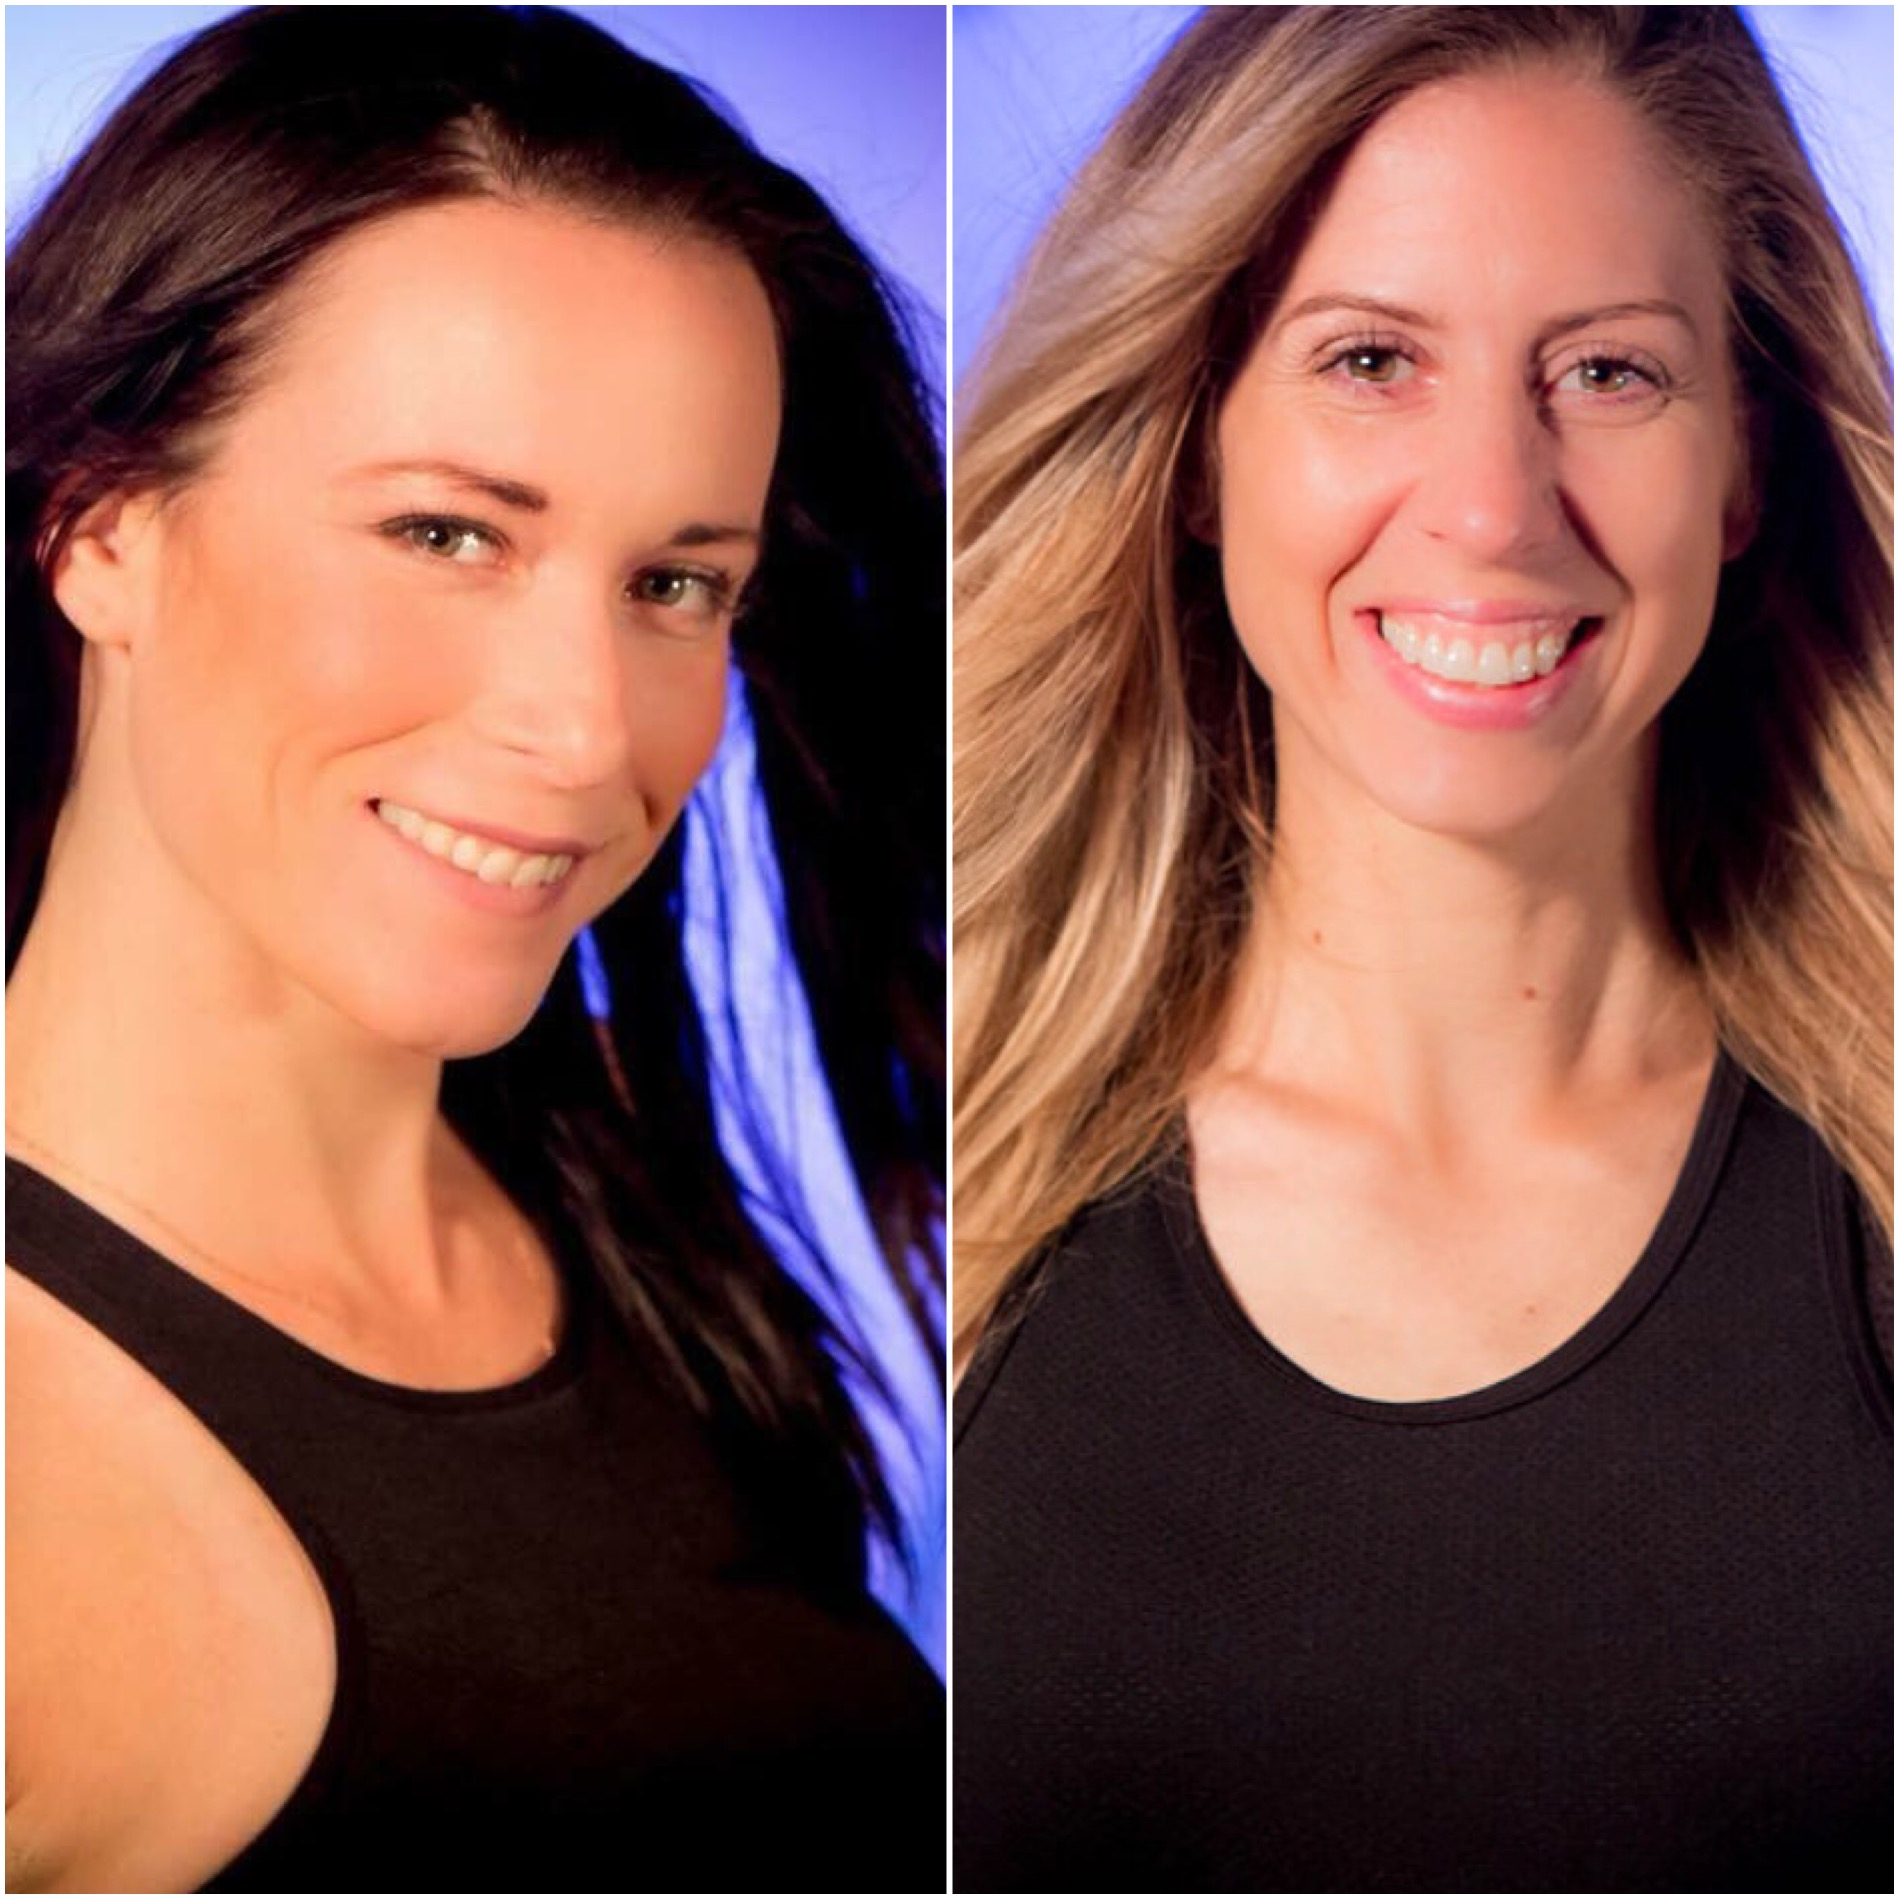 Tina Ferringer, owner, and Stephanie Woodard, marketing manager, will share how their strong culture helped them to muscle through this setback.